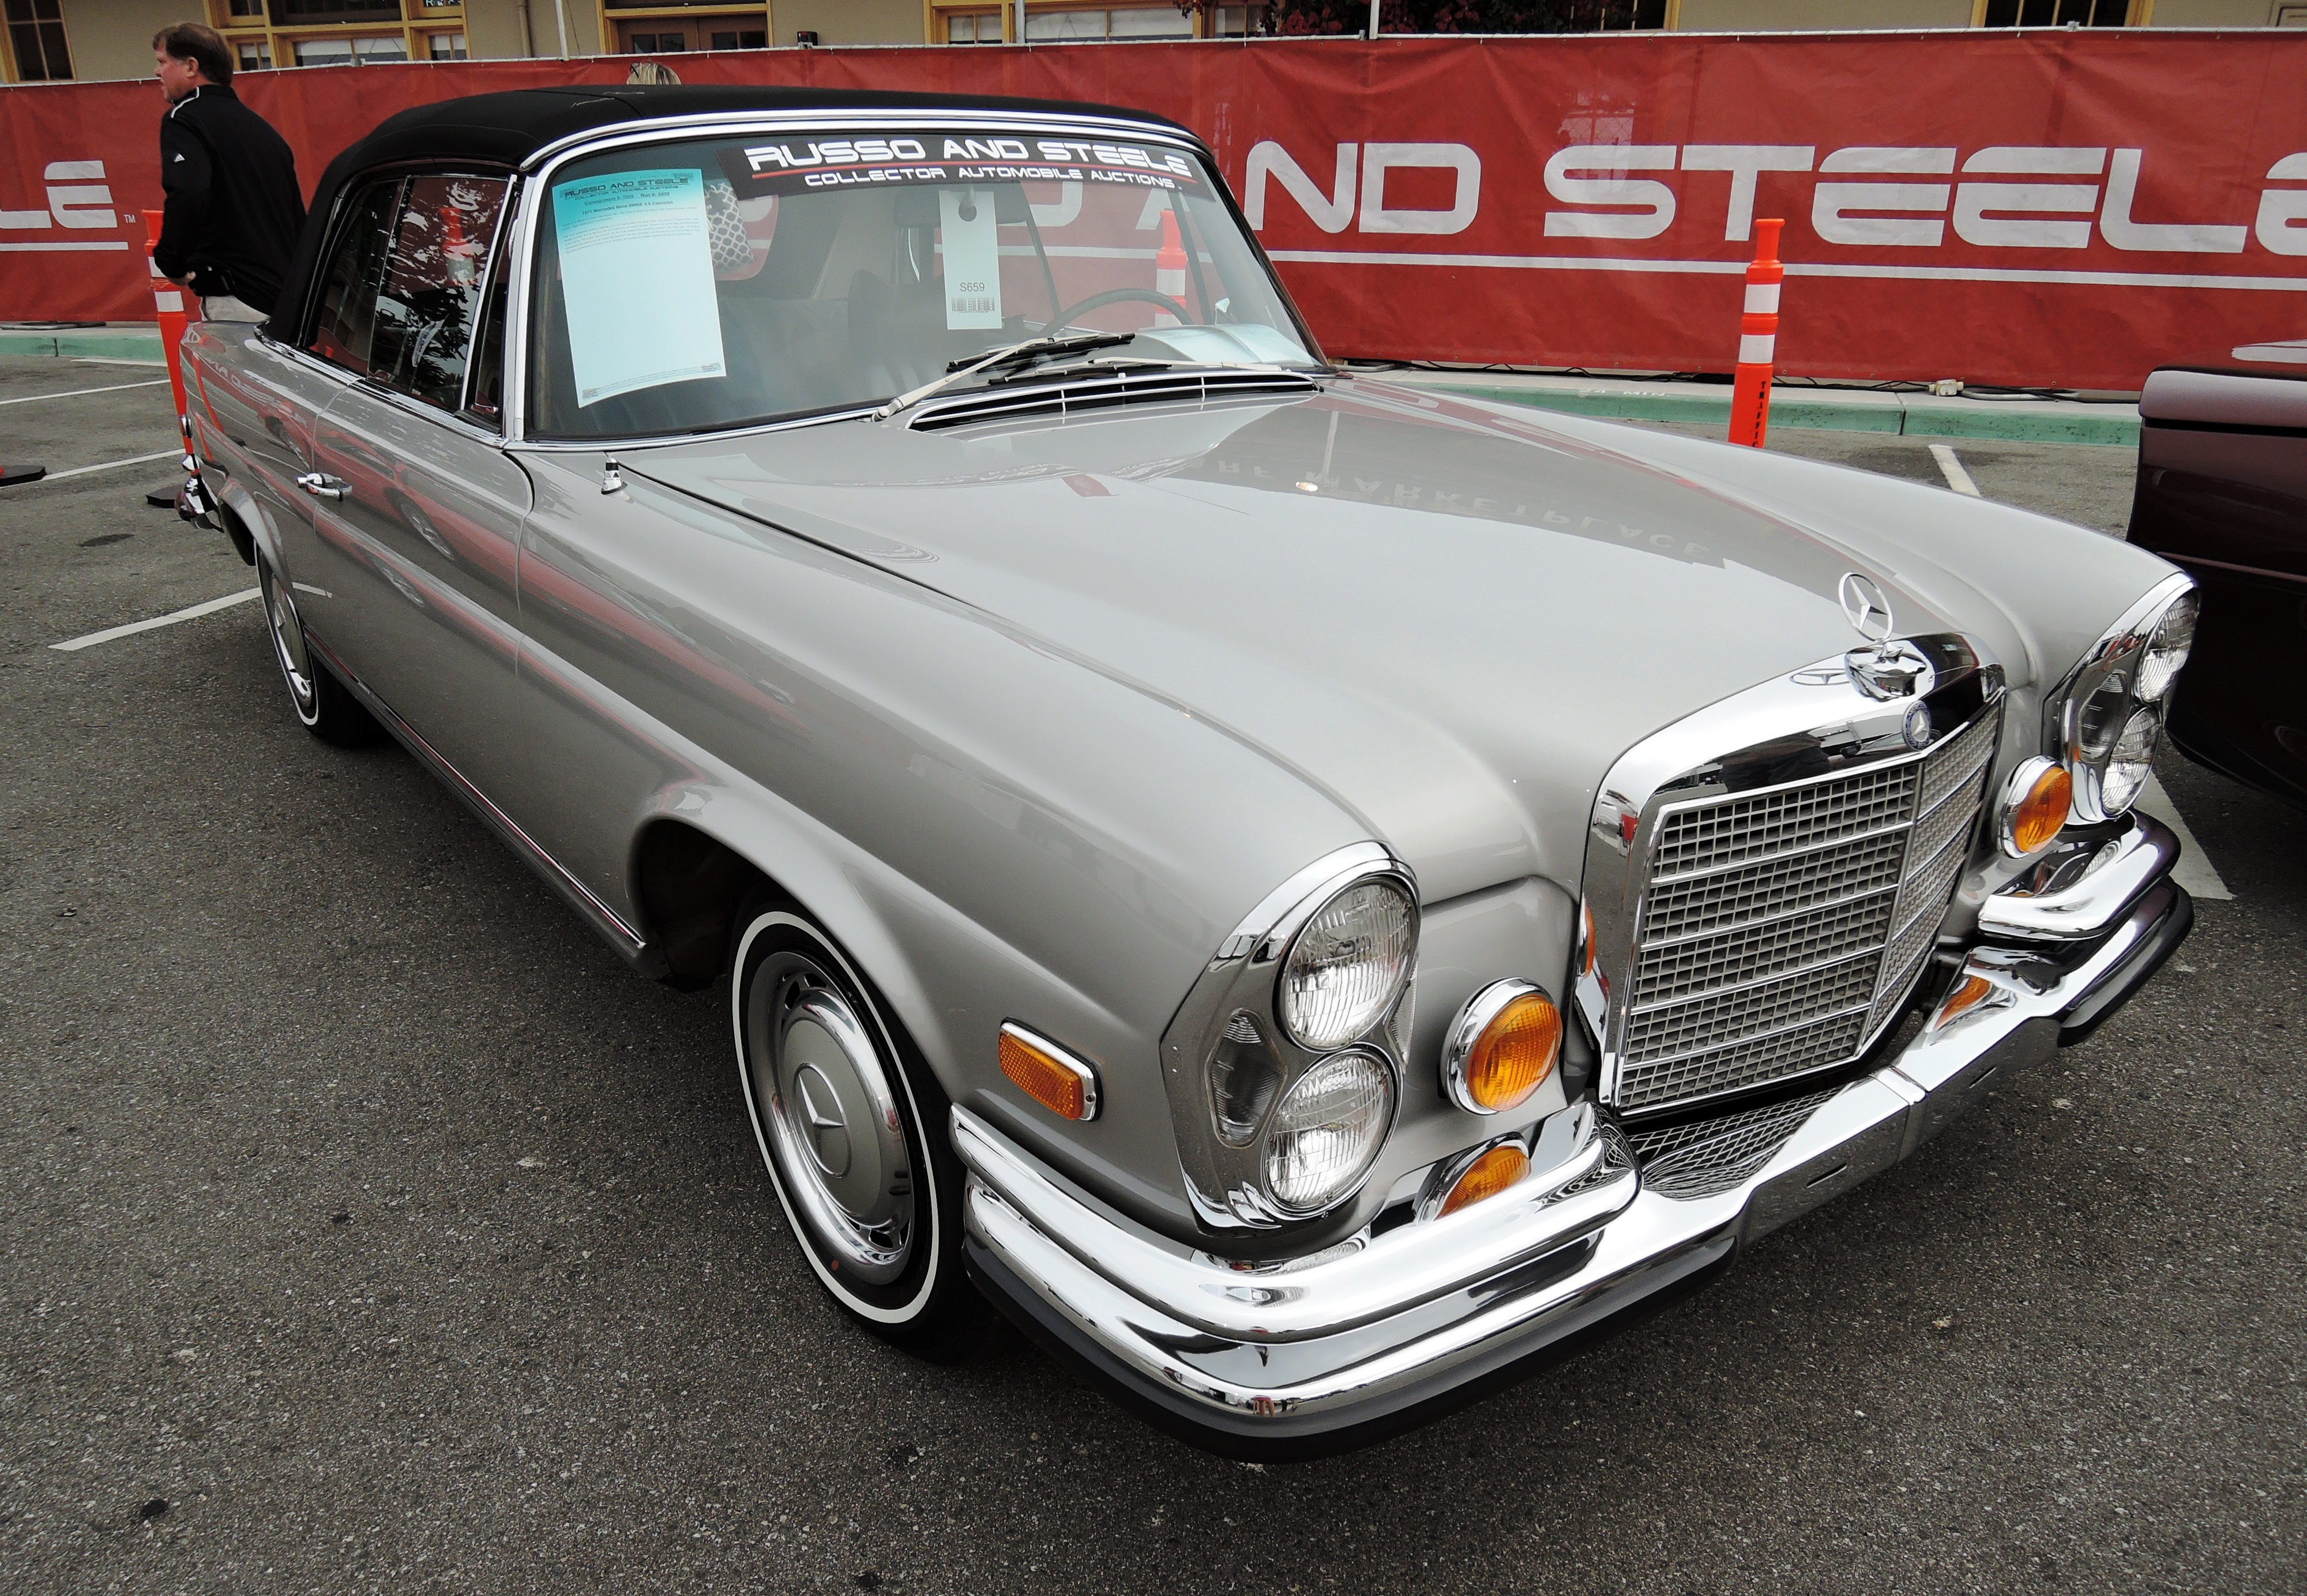 silver/black 1971 Mercedes-Benz 280SE 3.5 Cabriolet - monterey auctions Russo and Steele